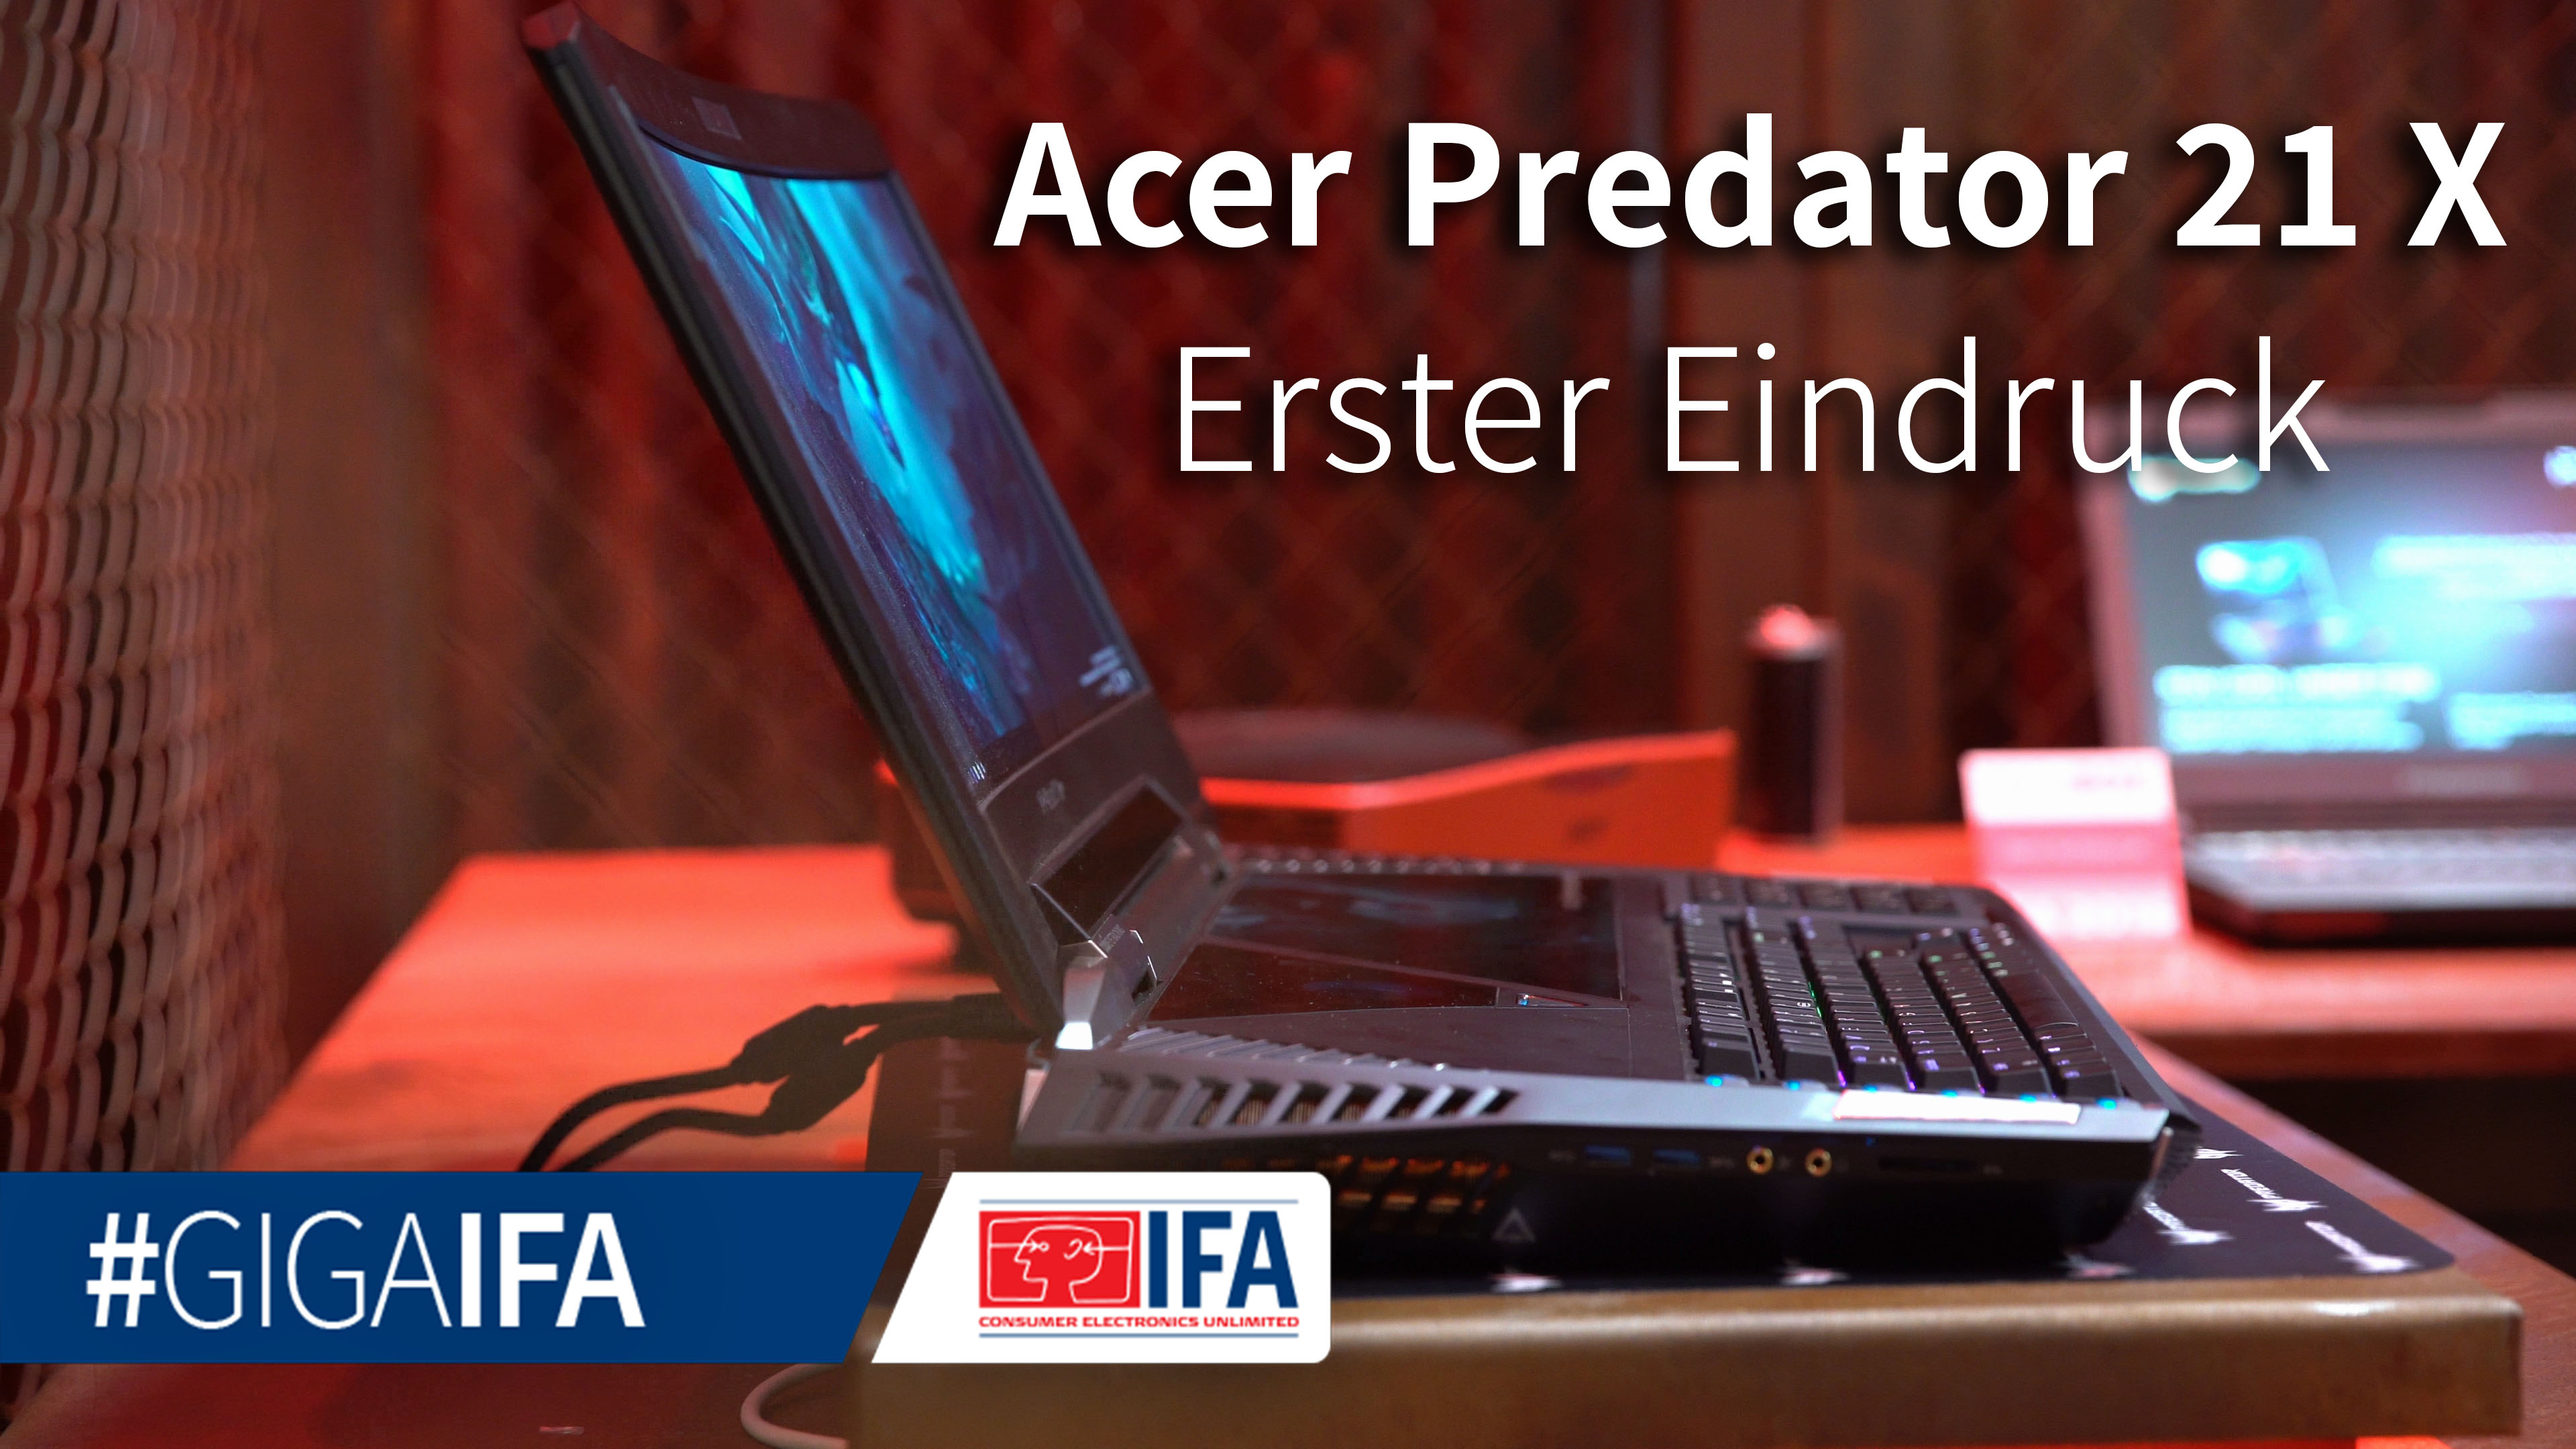 Acer Predator 21 X: Curved-Gaming-Laptop im Hands-On